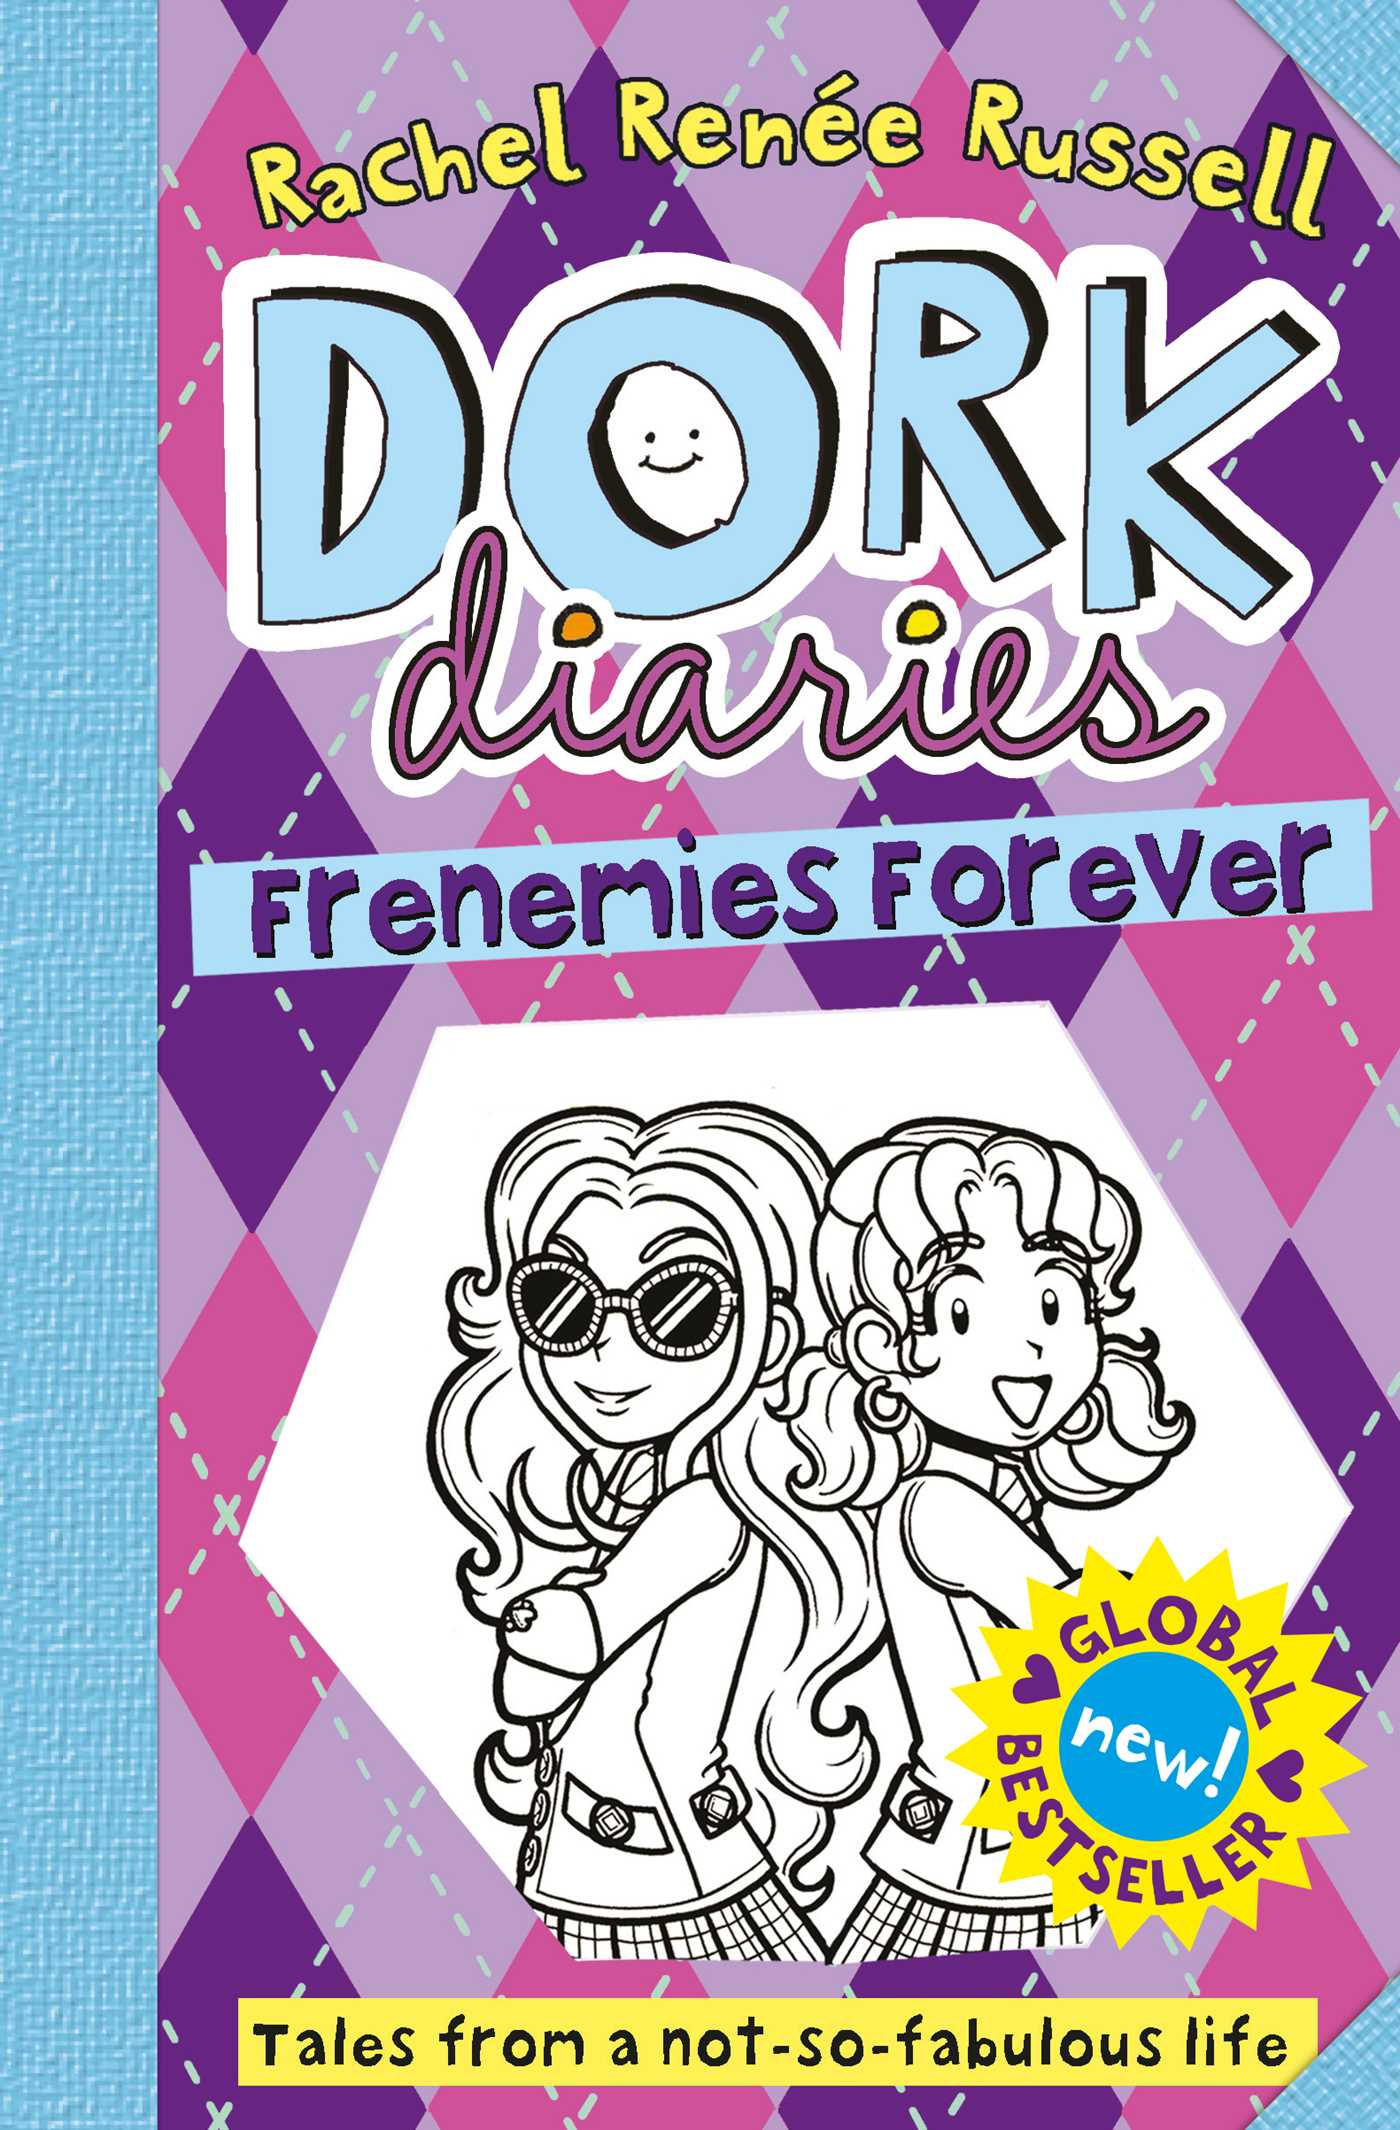 Dork diaries frenemies forever 9781471158018 hr